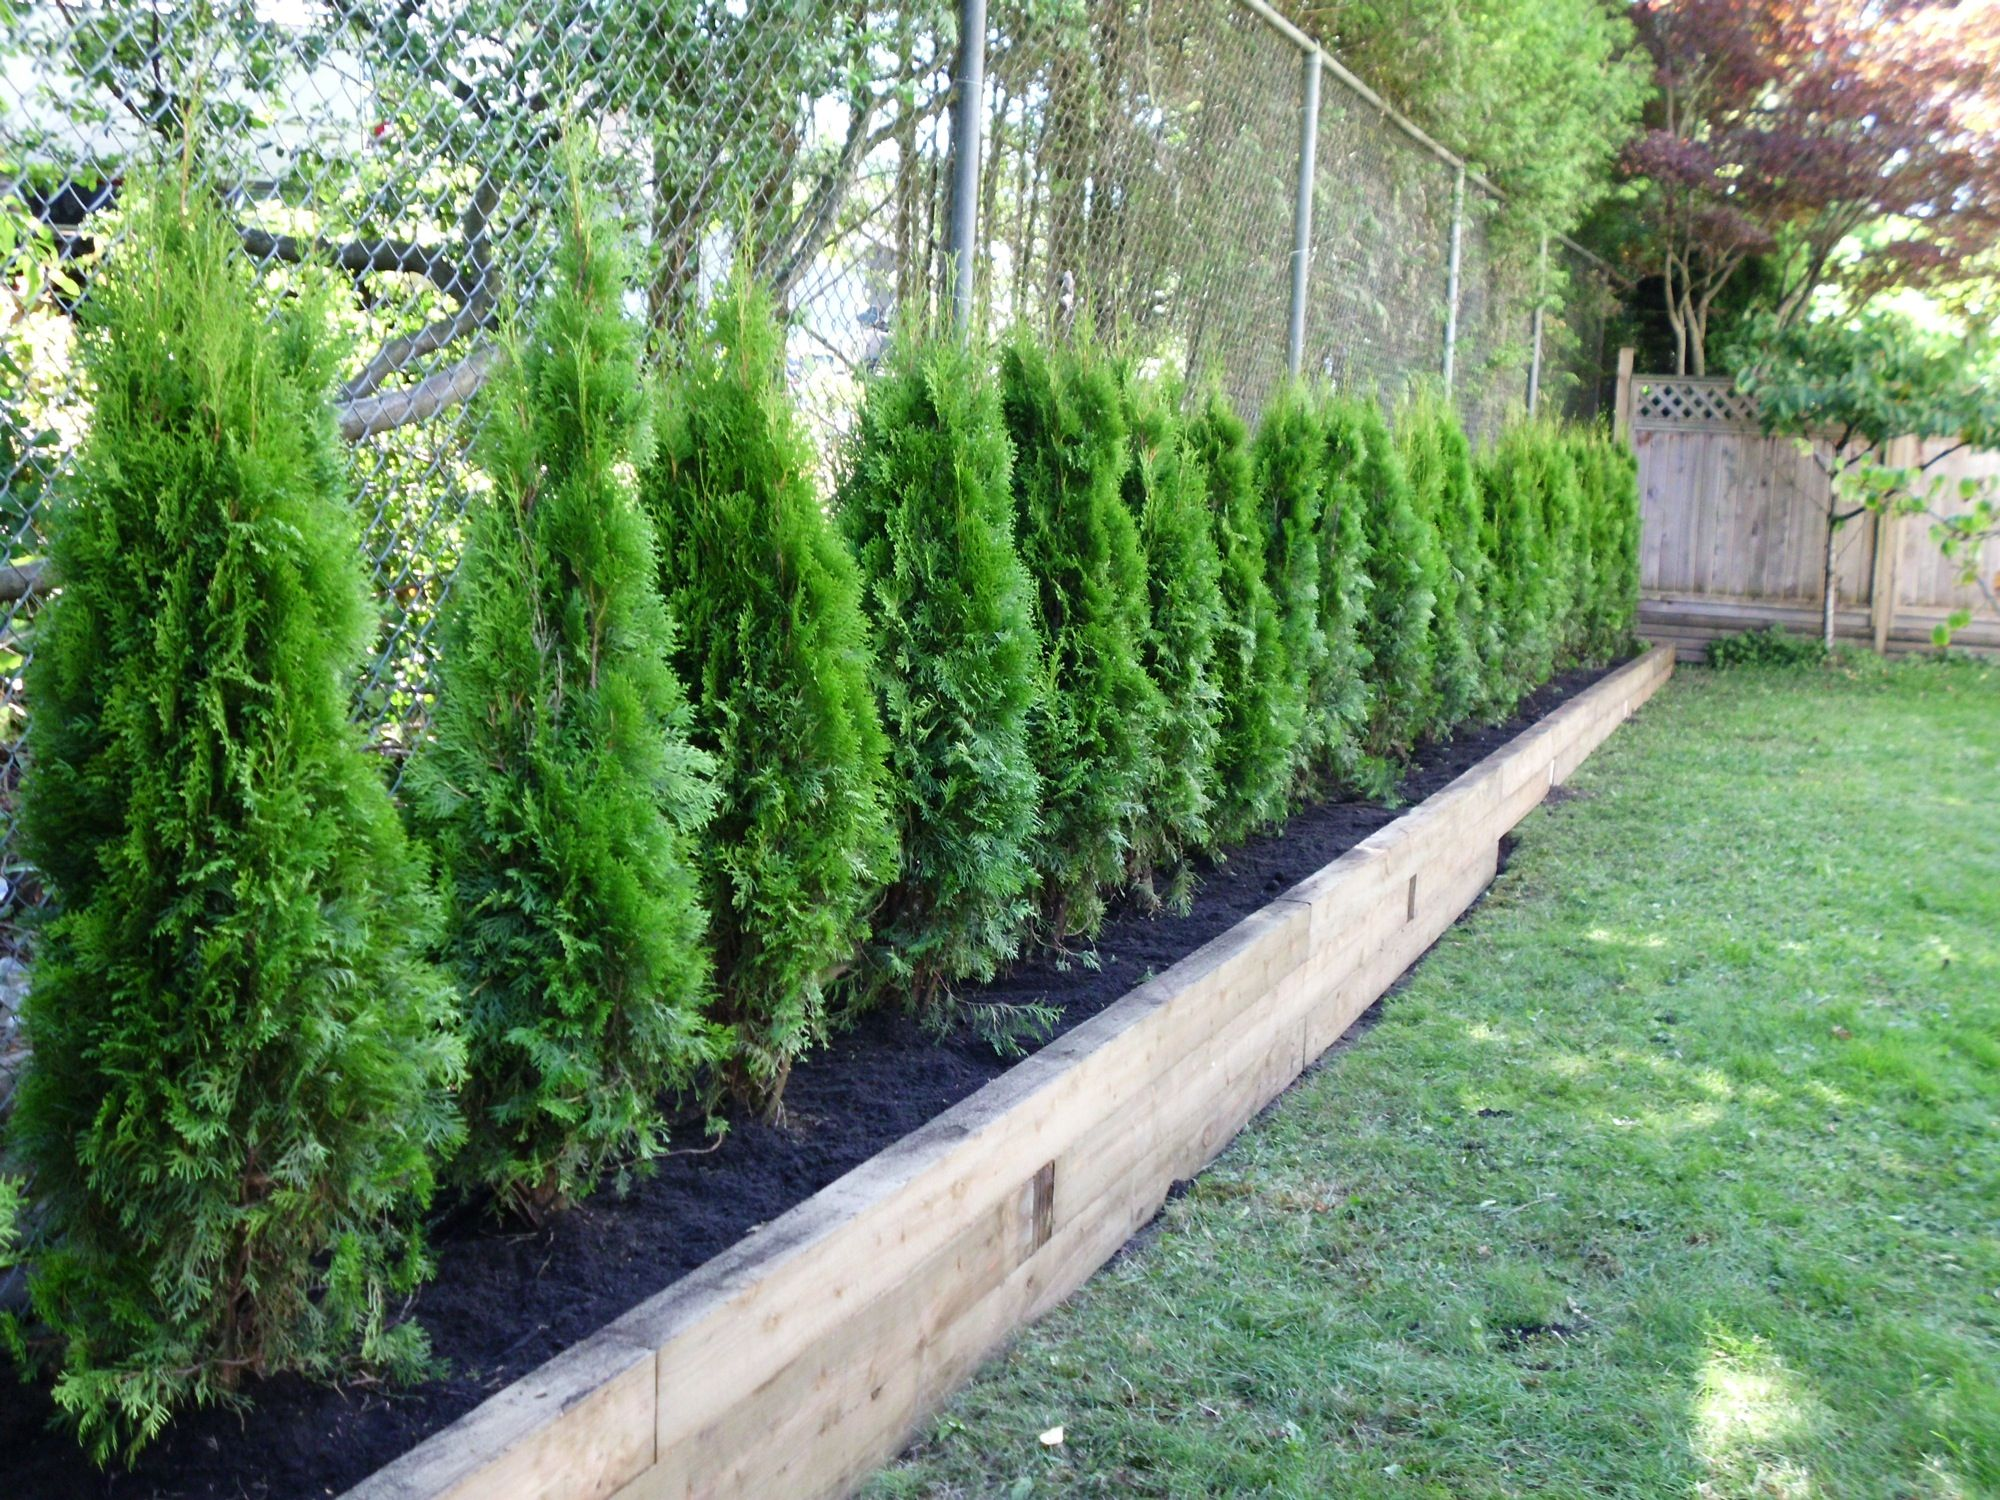 Really the raised bed idea to create a privacy fence ... on backyard food ideas, backyard designs, backyard lights ideas, backyard family ideas, backyard beauty ideas, pool ideas, backyard spa, home ideas, backyard business ideas, backyard entertainment ideas, playground flooring ideas, backyard views ideas, backyard shop ideas, backyard space ideas, backyard landscaping, backyard security ideas, unusual yard ideas, backyard fences, yard fence ideas, backyard passage ideas,